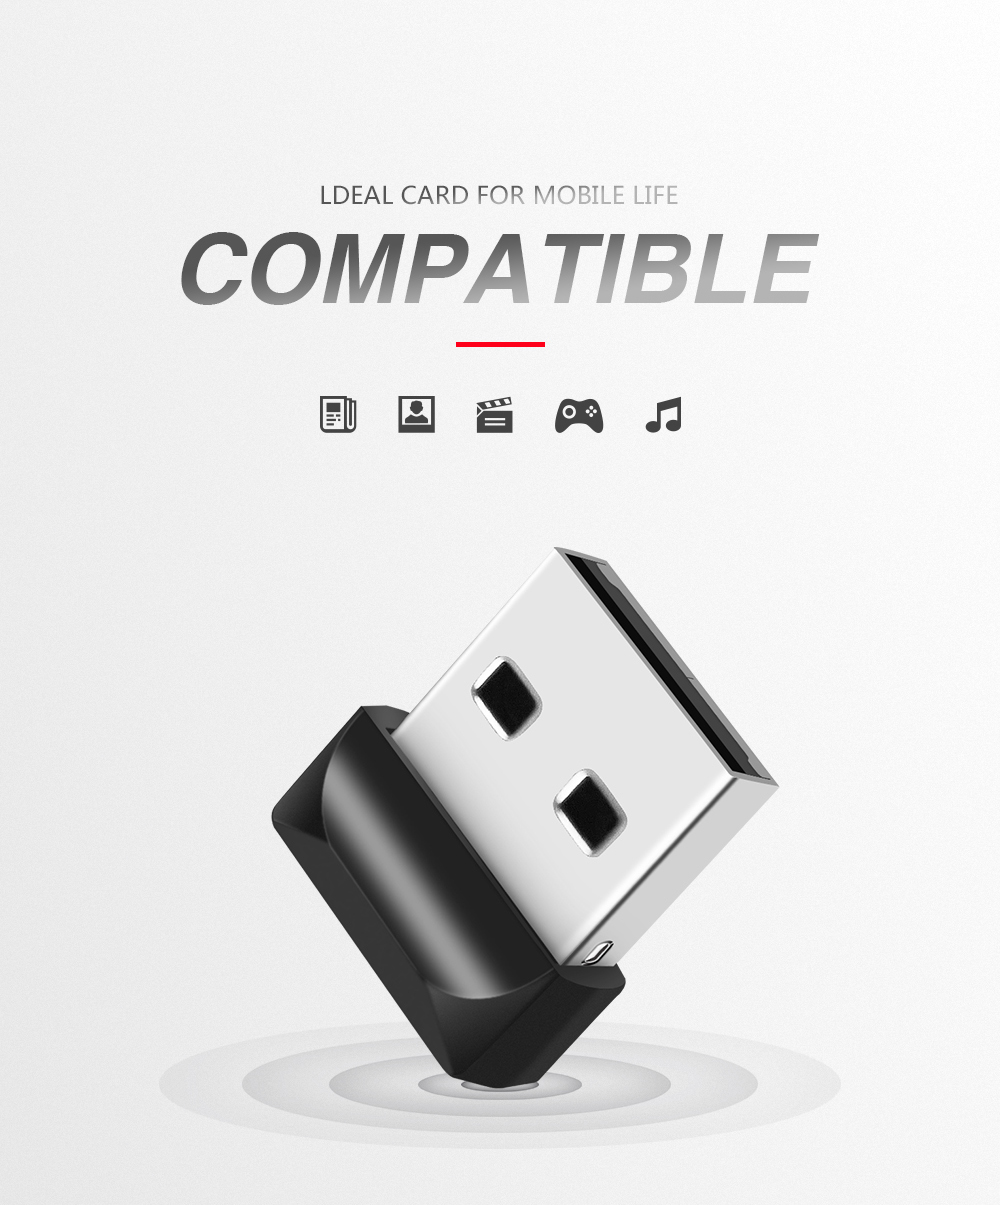 Super Mini Metal Pendrive 8gb 16gb High Speed Pen Drive Flash Memory The Most Commonly Used Usb Device Is Please Do Not Format Your Frequently Otherwise Will Be Damaged Easily